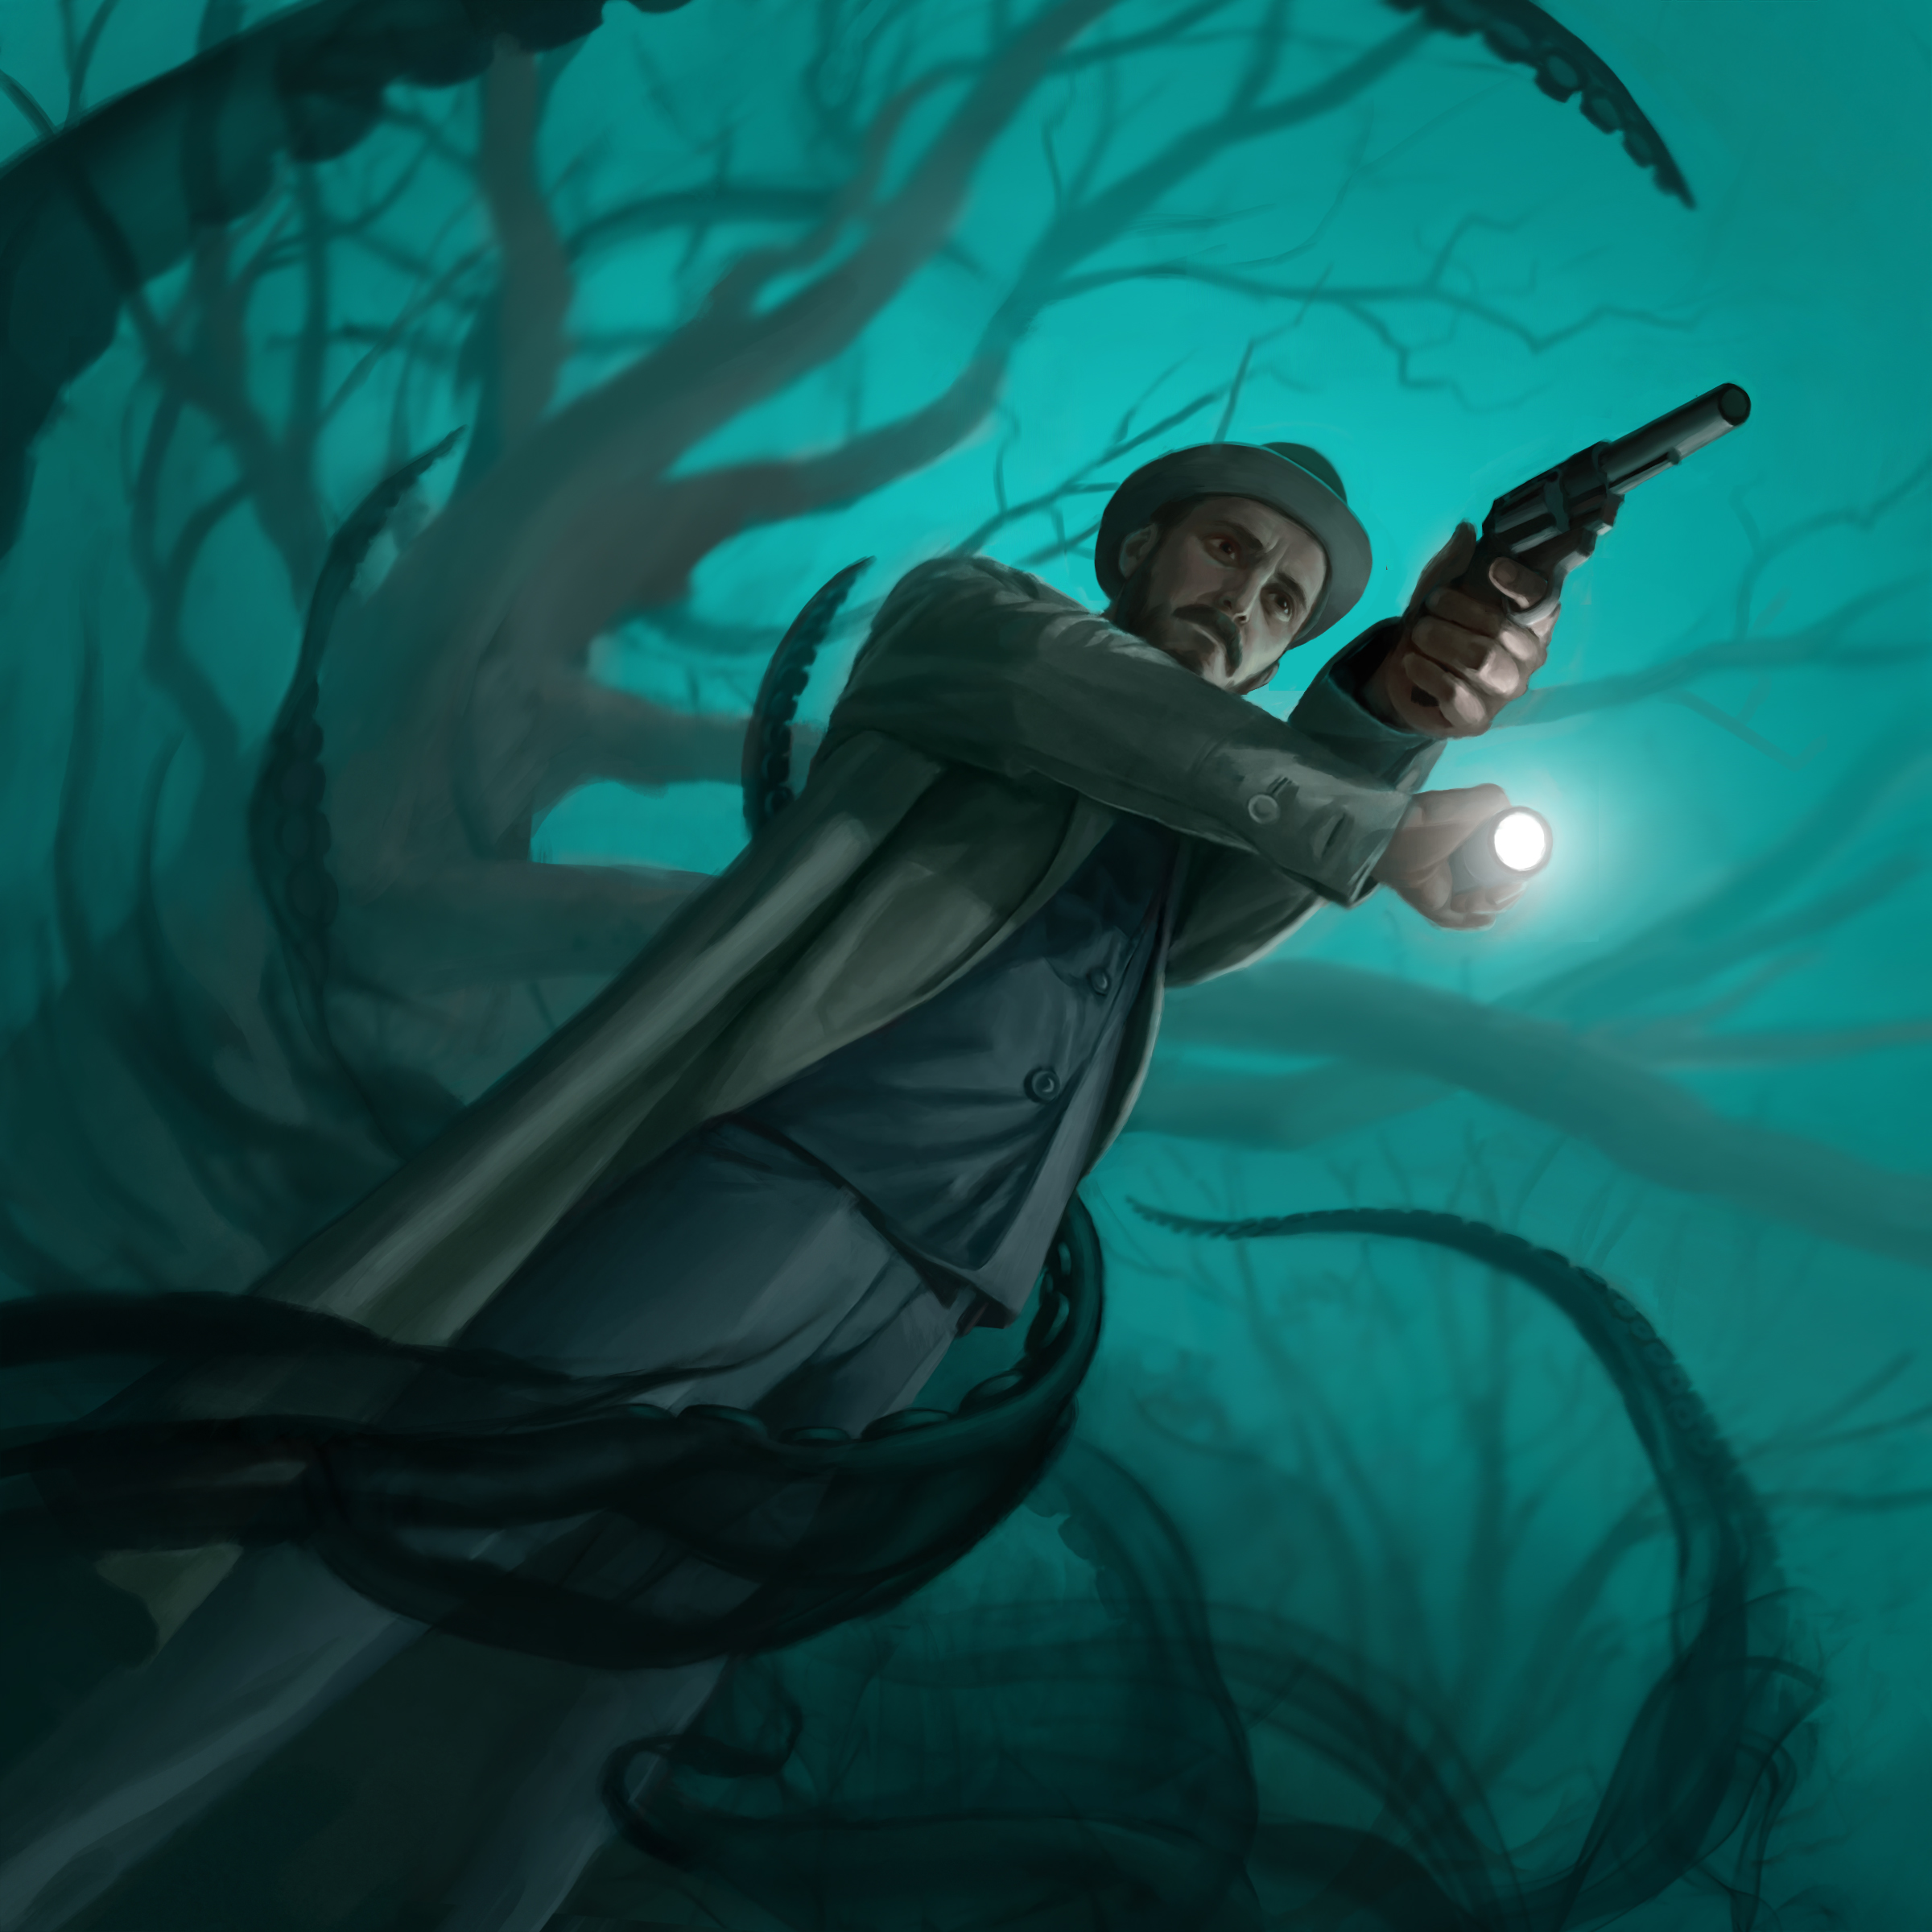 A detective is ambushed by a Cthulhu spirit.